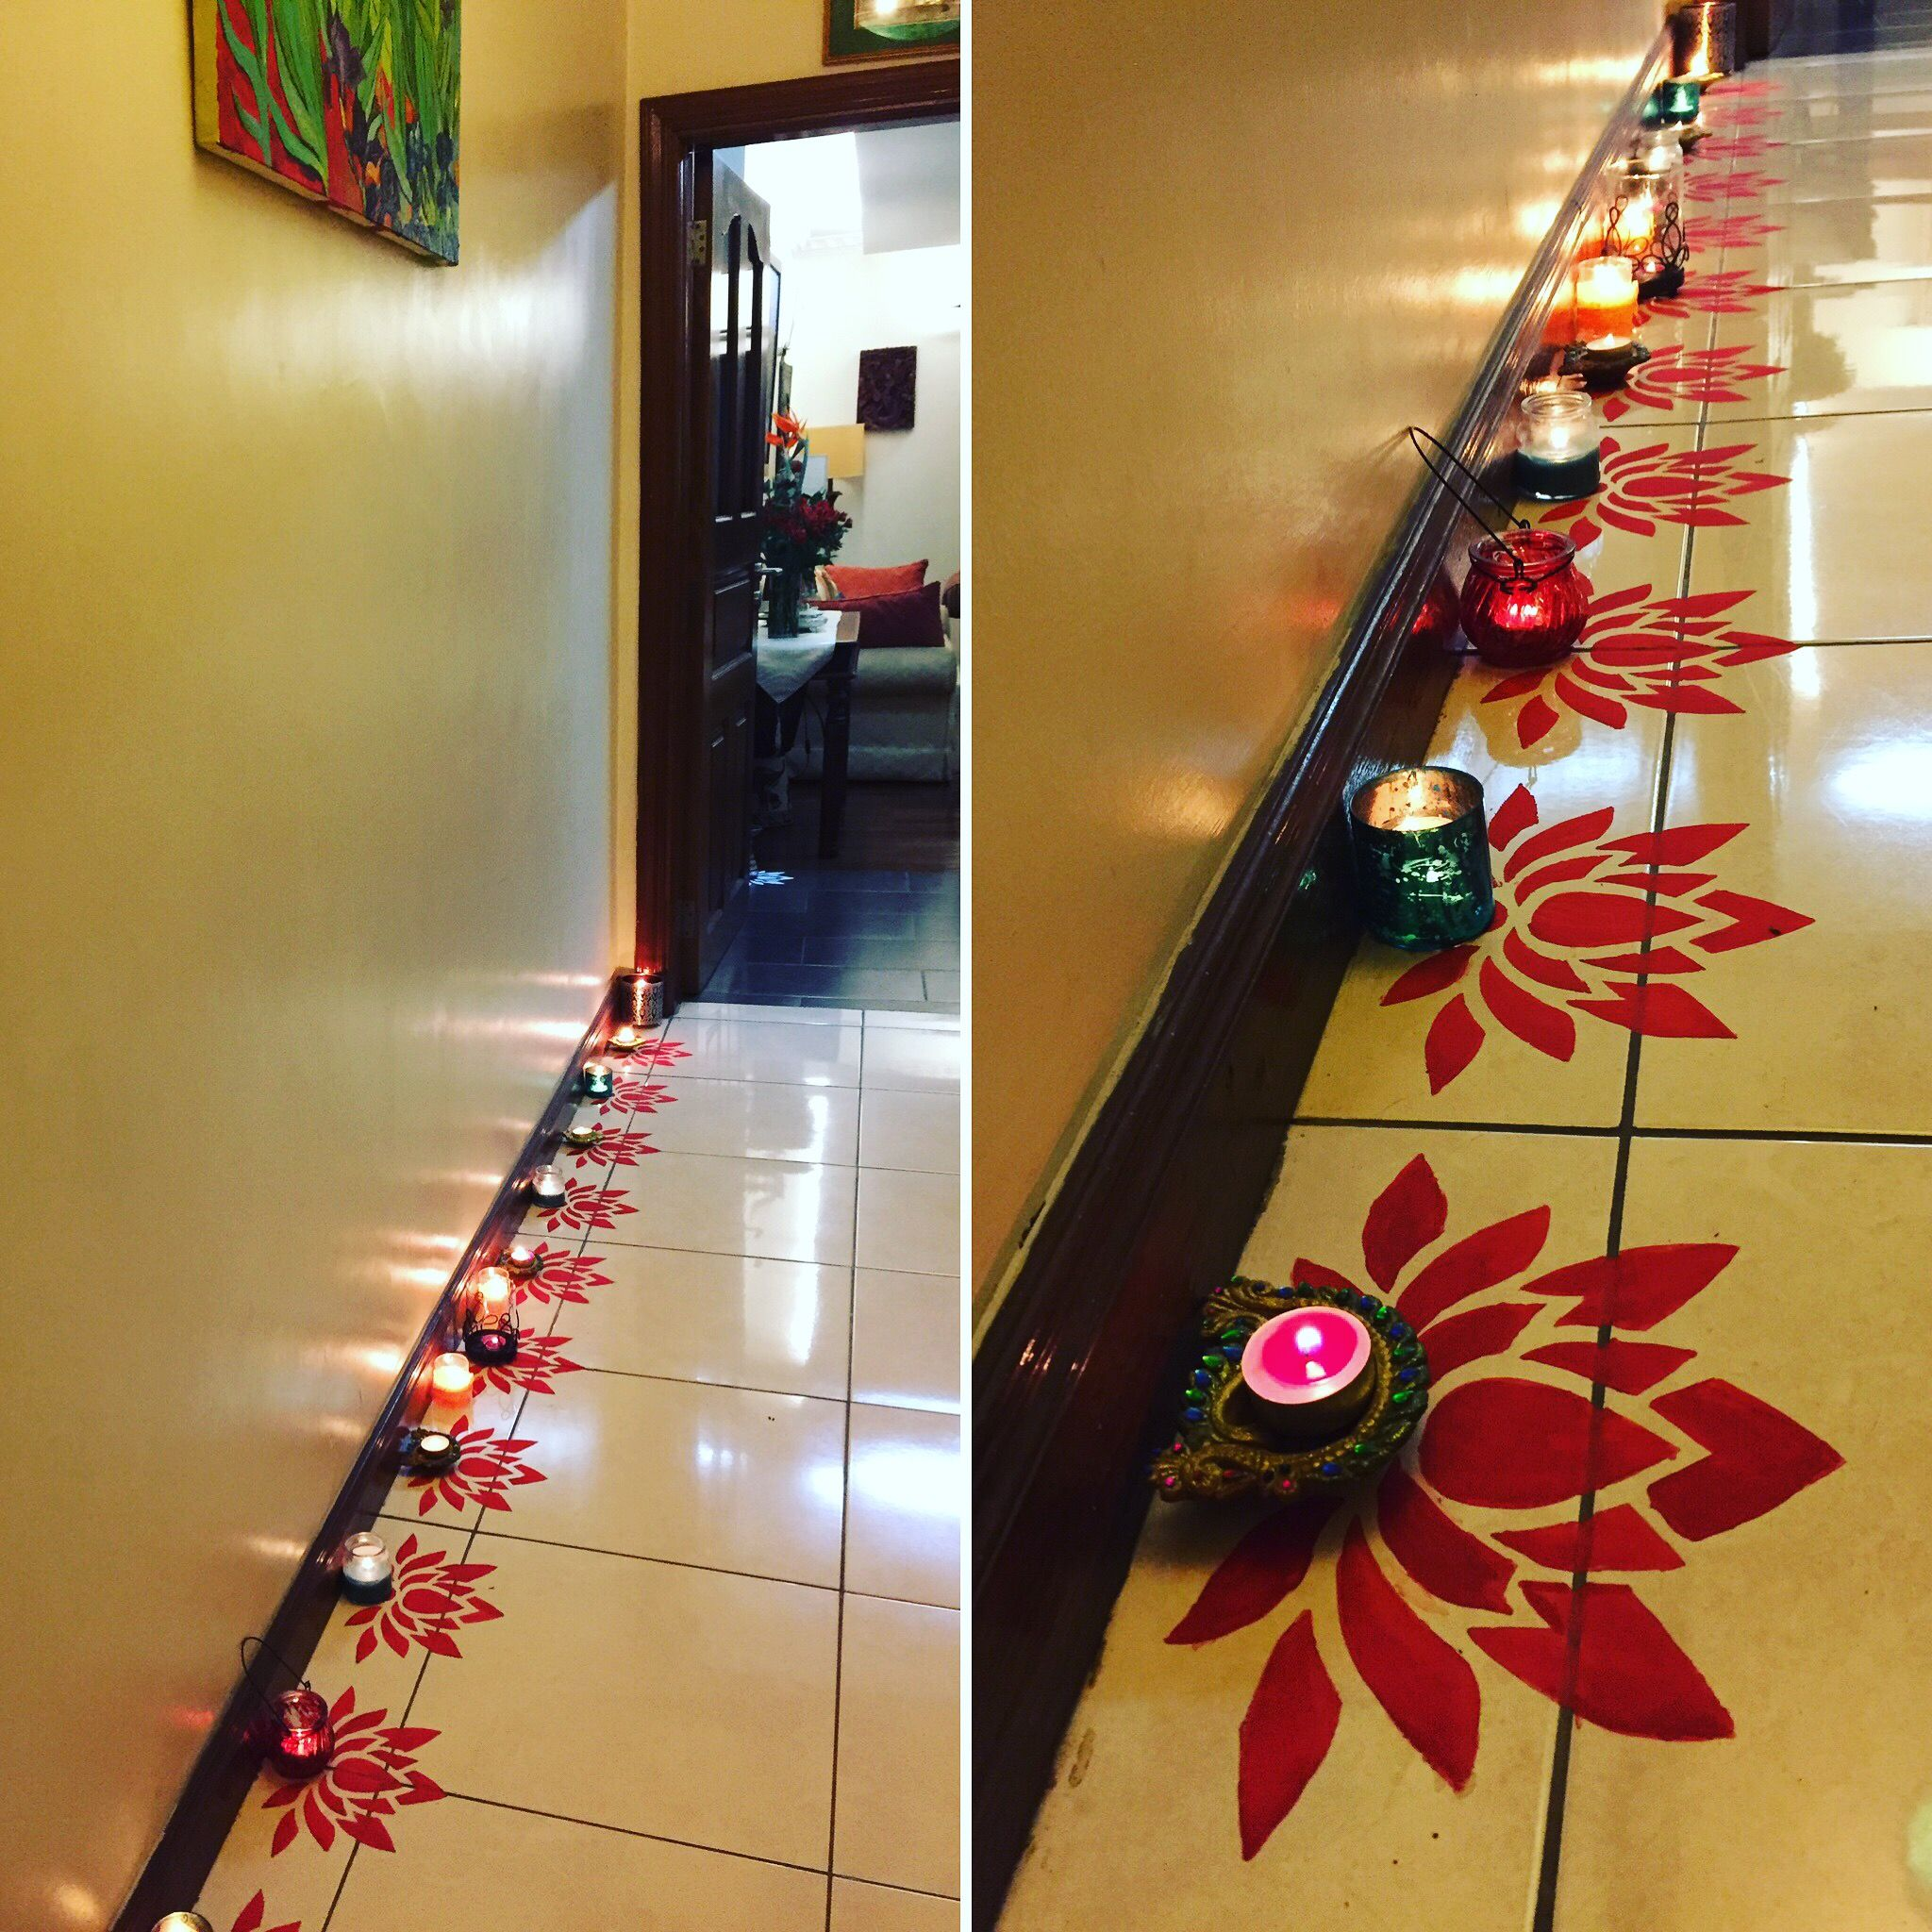 Diy Diwali Rangoli Design Using A Paper Cut Out And Poster Colours!! Find A Tutorial Like This On Www.villamarigold.... Rangoli, Indiandecor, Indianfestival, Festival Of Lights, Lamps, Diwali Decor Id...